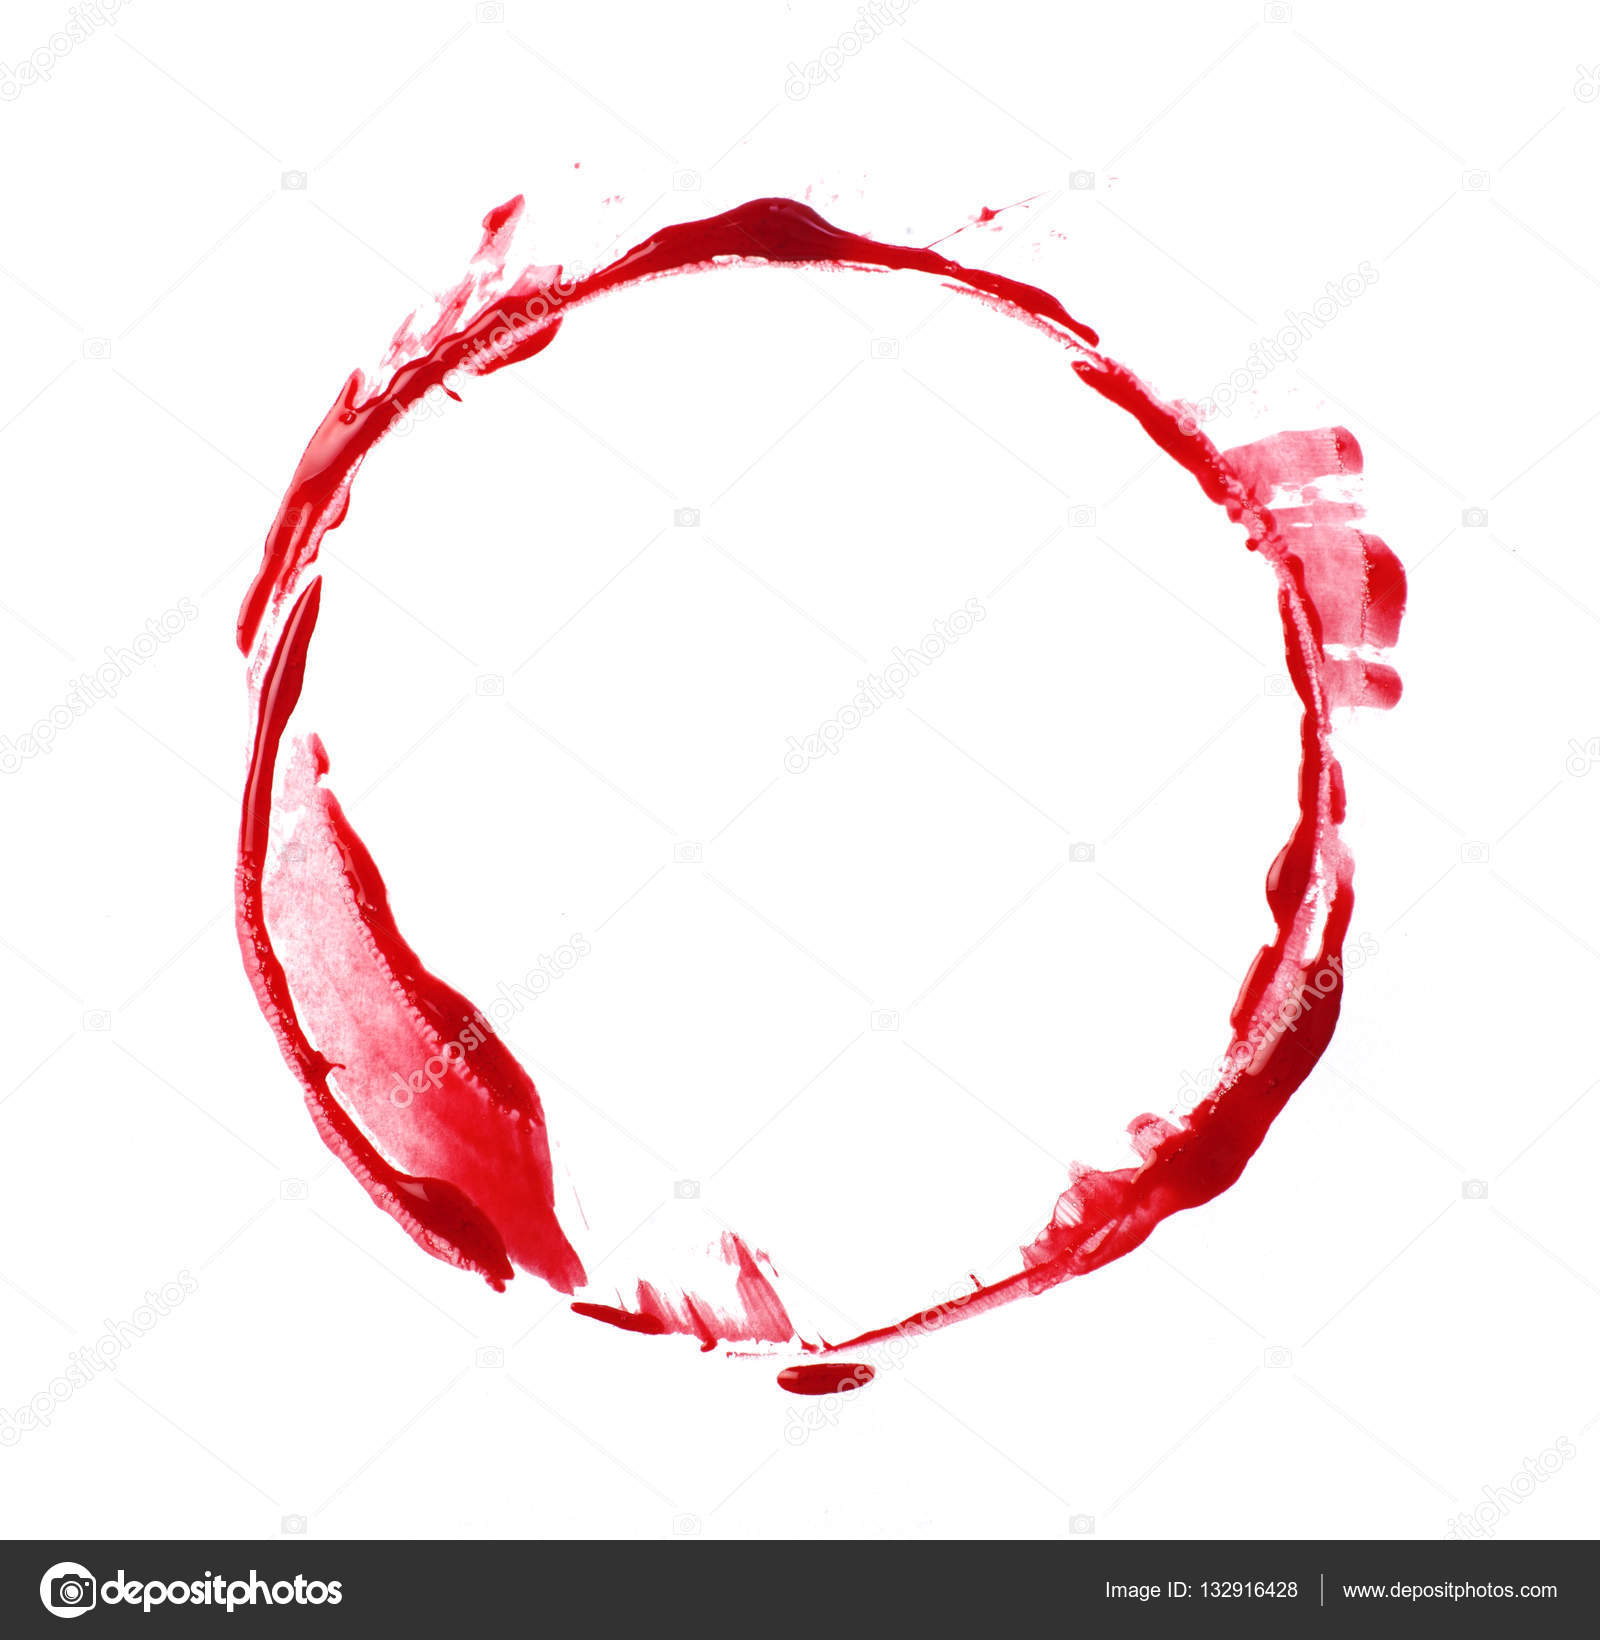 how to make a circle with blood